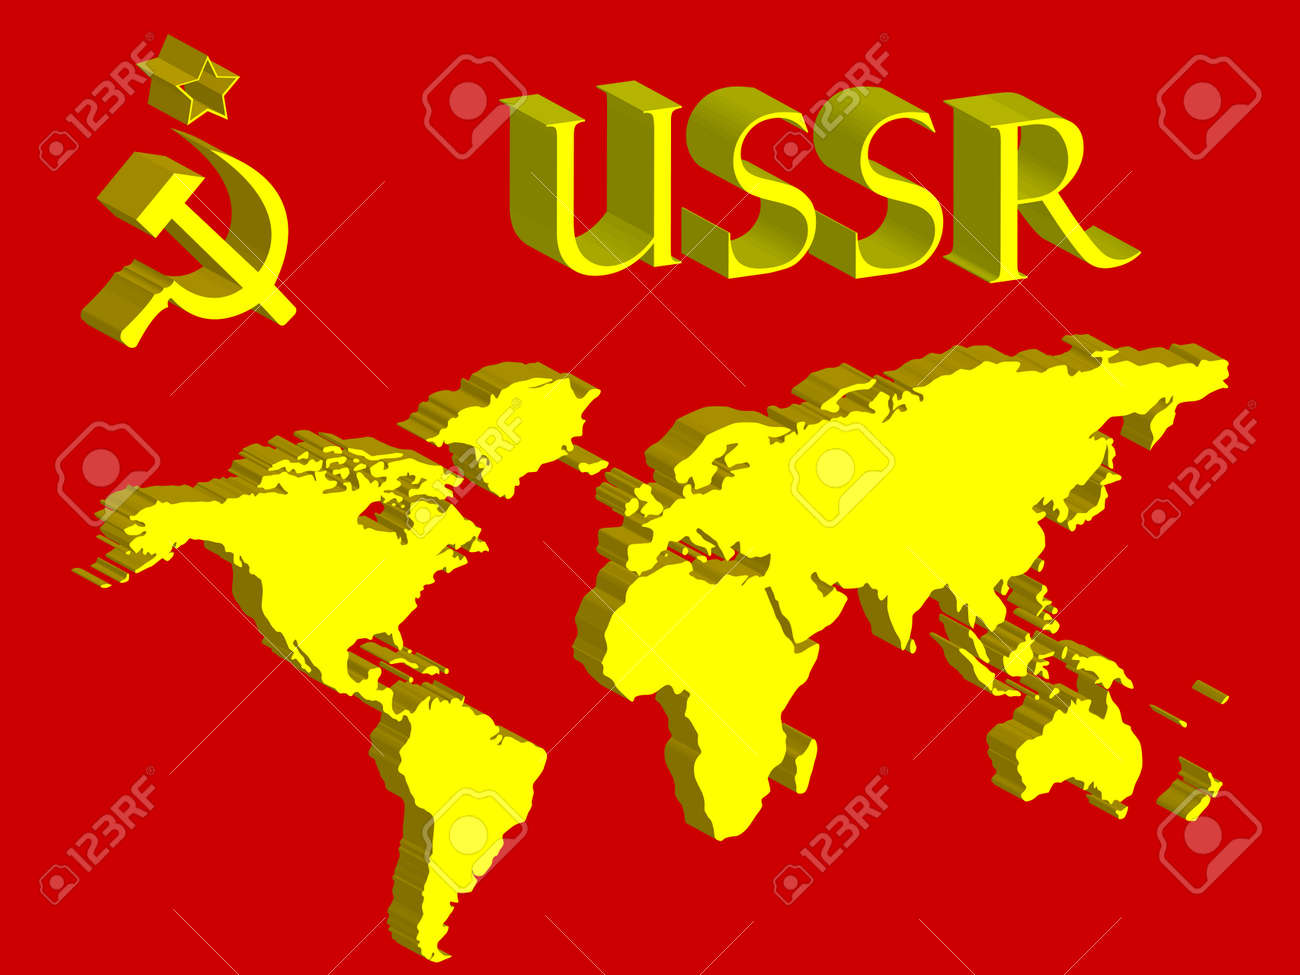 Ussr symbol and world map abstract art illustration royalty free ussr symbol and world map abstract art illustration stock vector 6690640 gumiabroncs Gallery